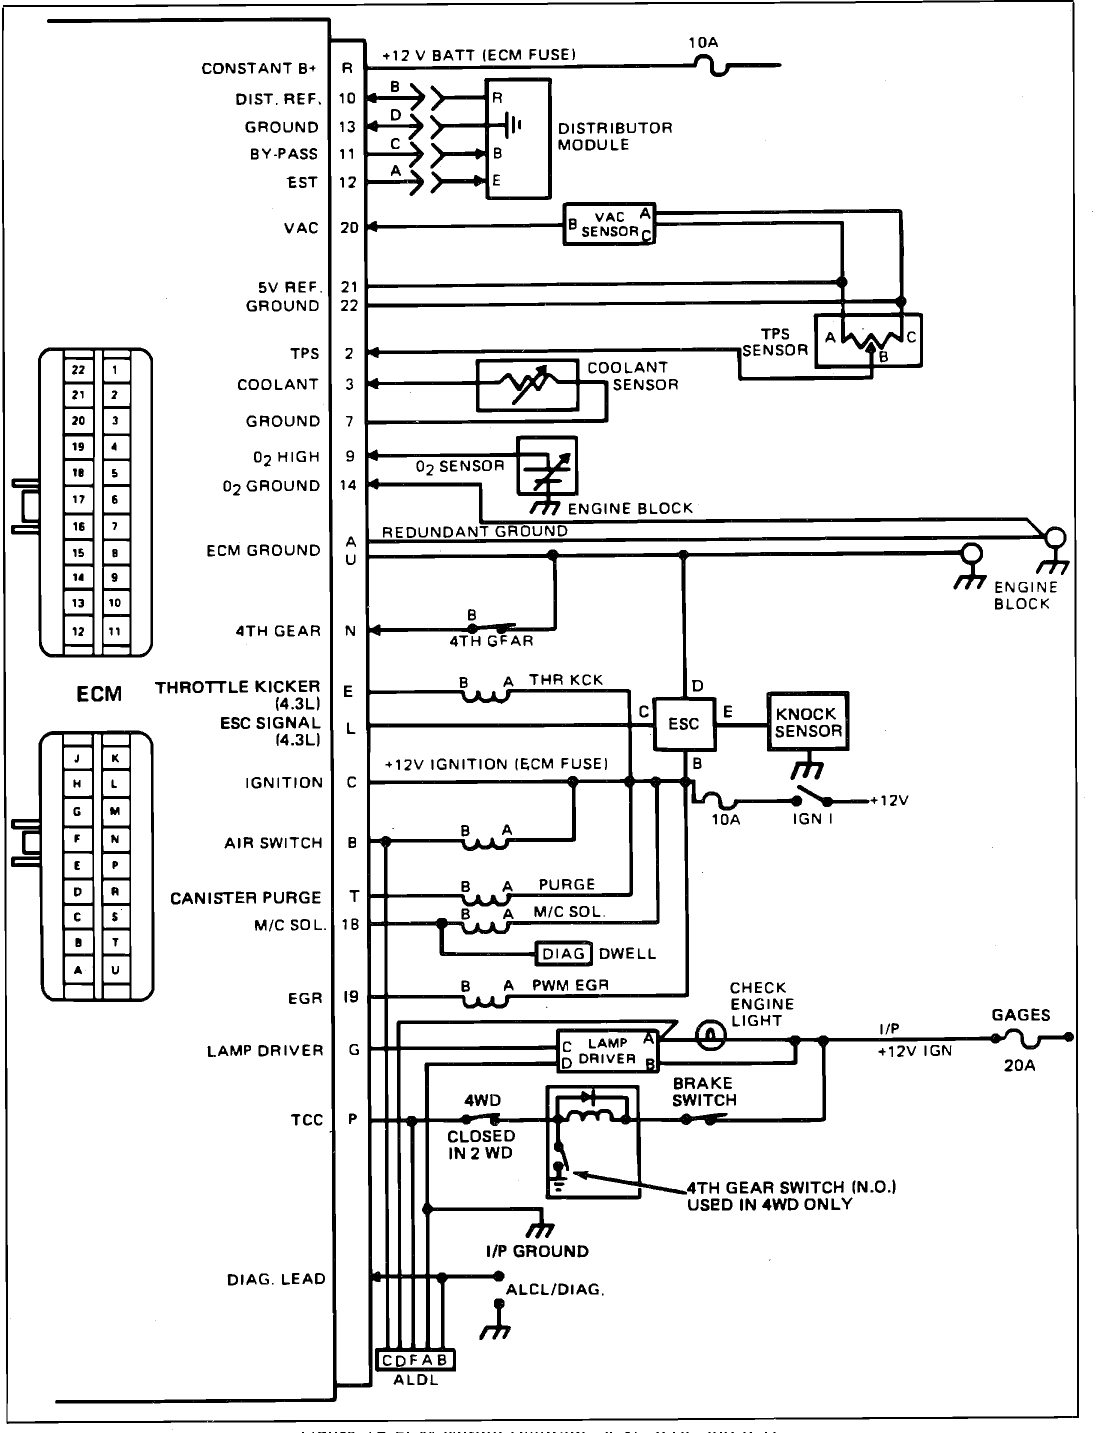 hight resolution of 1989 chevrolet g20 fuse box diagram wiring diagram host1989 chevrolet g20 fuse box diagram wiring schematic